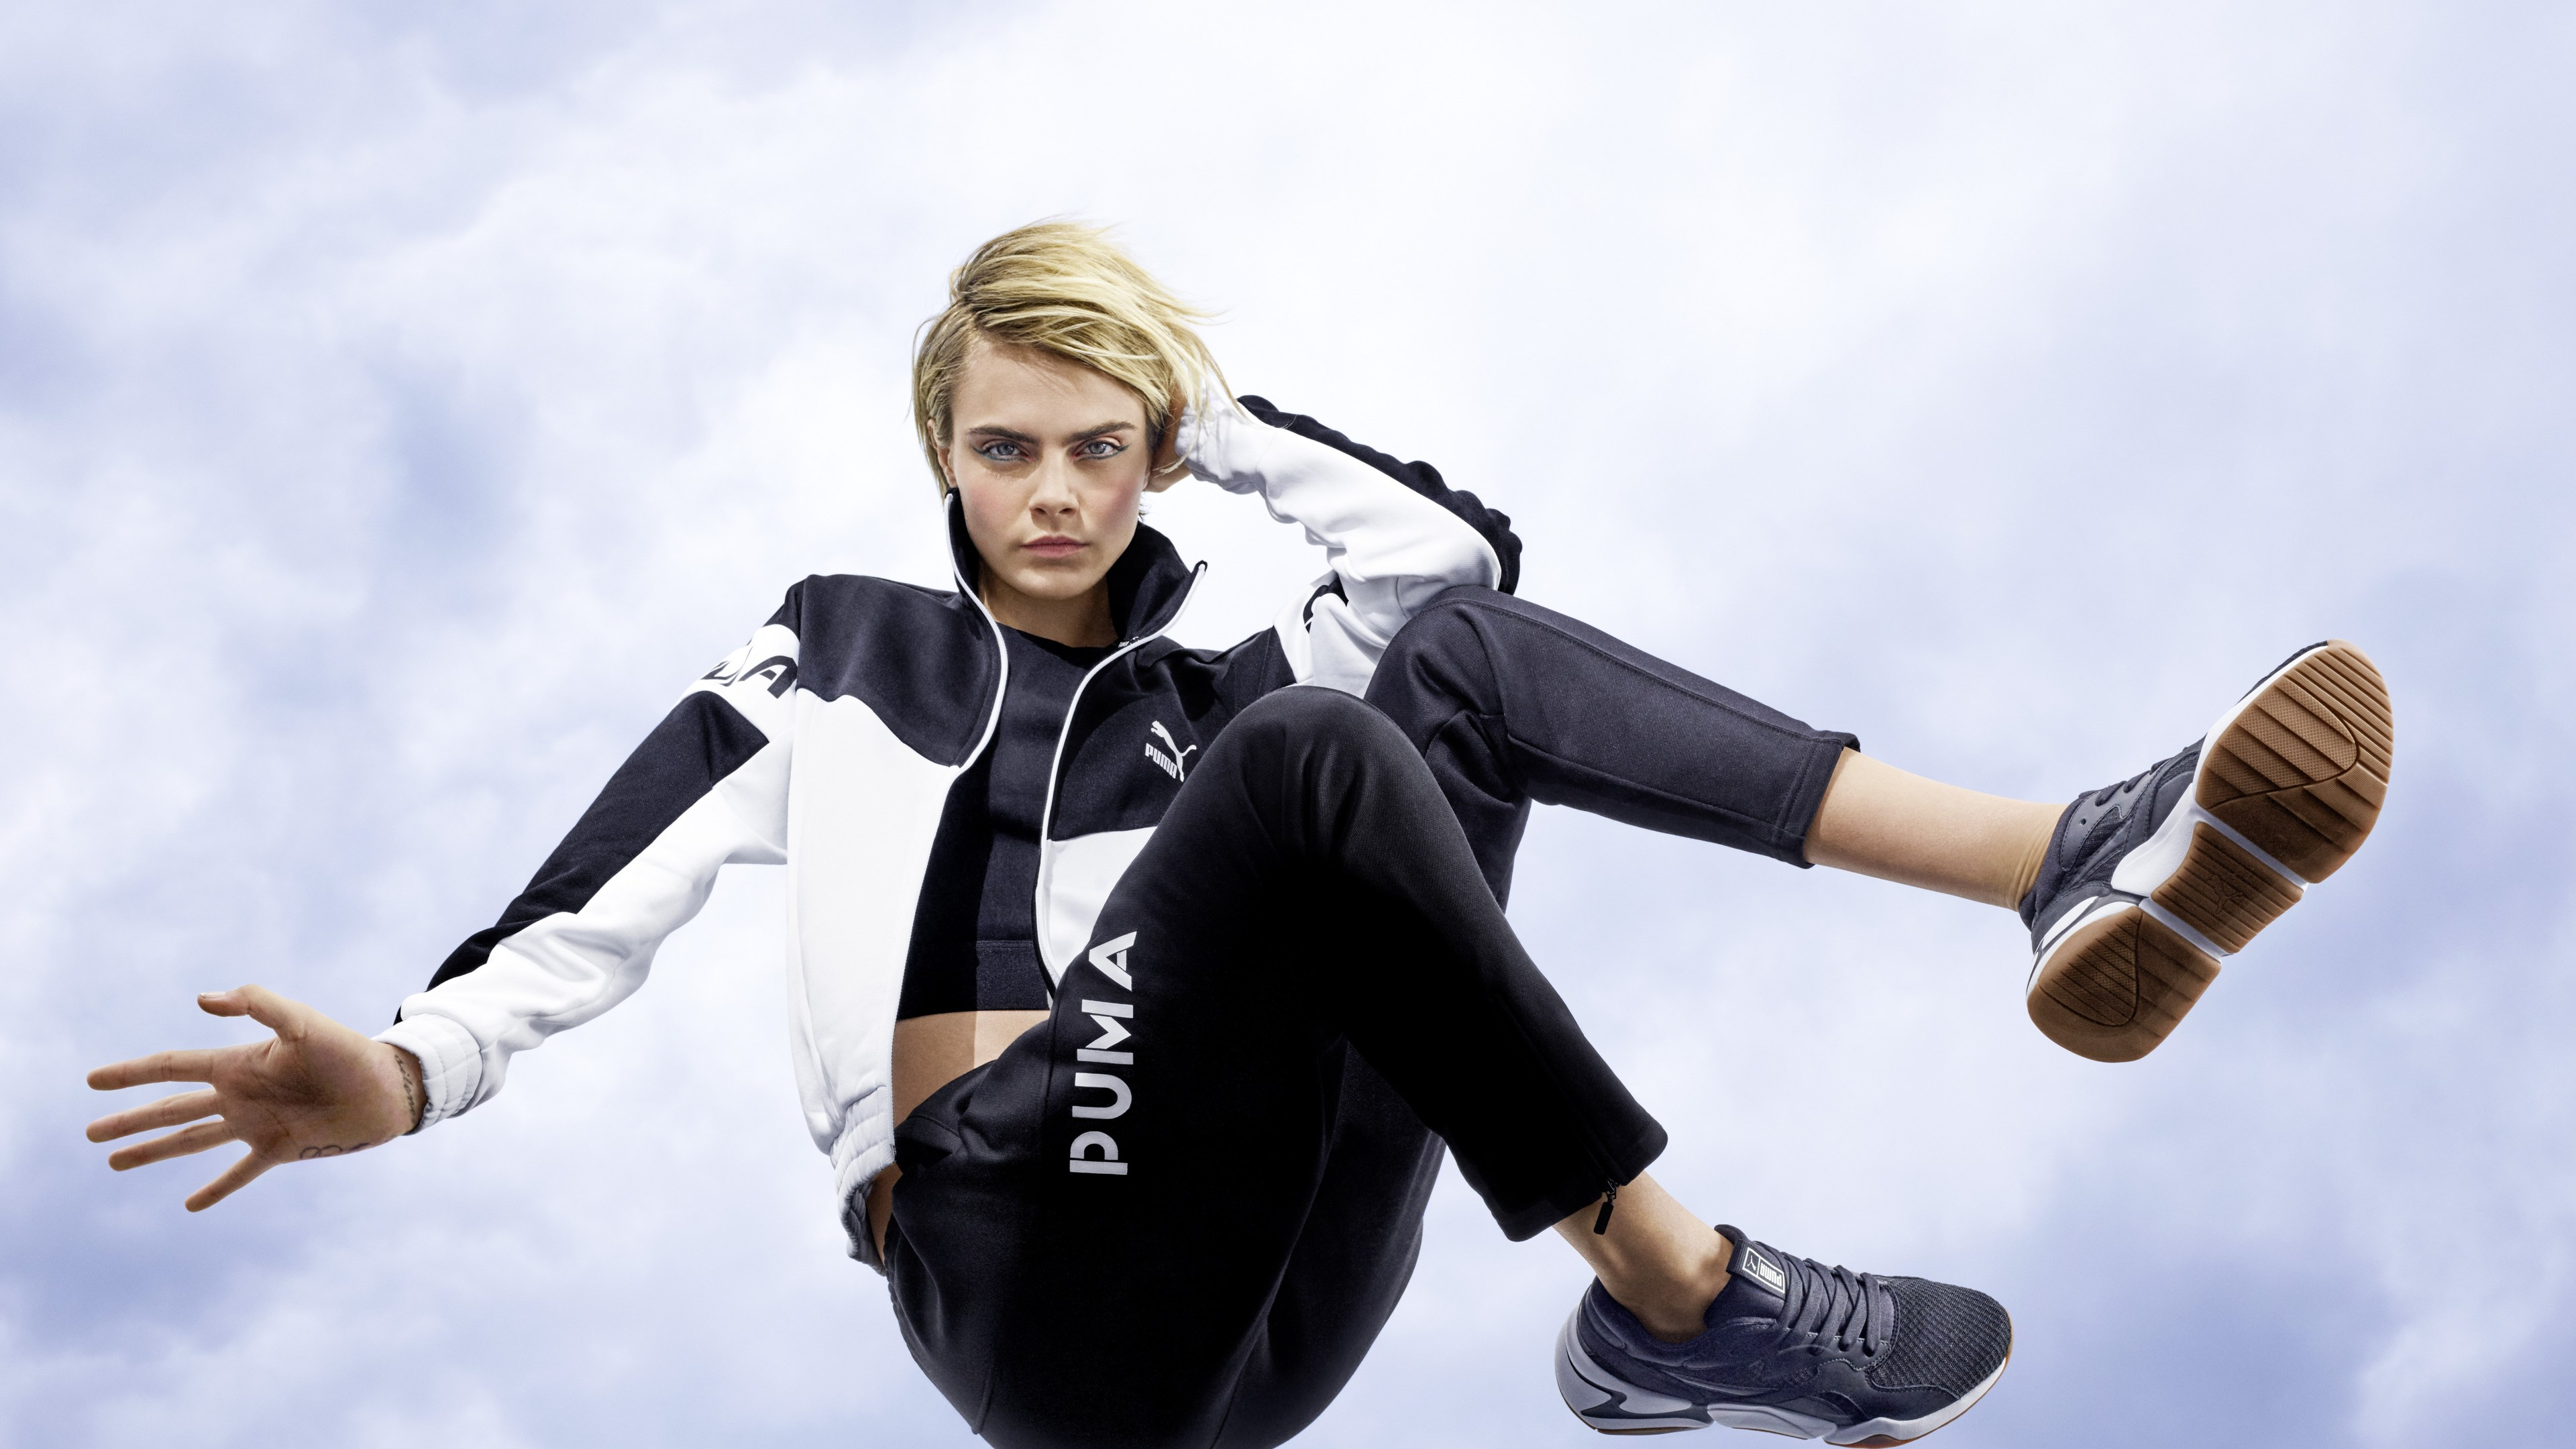 cara delevingne puma 2019 4k 1558220694 - Cara Delevingne Puma 2019 4k - model wallpapers, hd-wallpapers, girls wallpapers, celebrities wallpapers, cara delevingne wallpapers, 4k-wallpapers